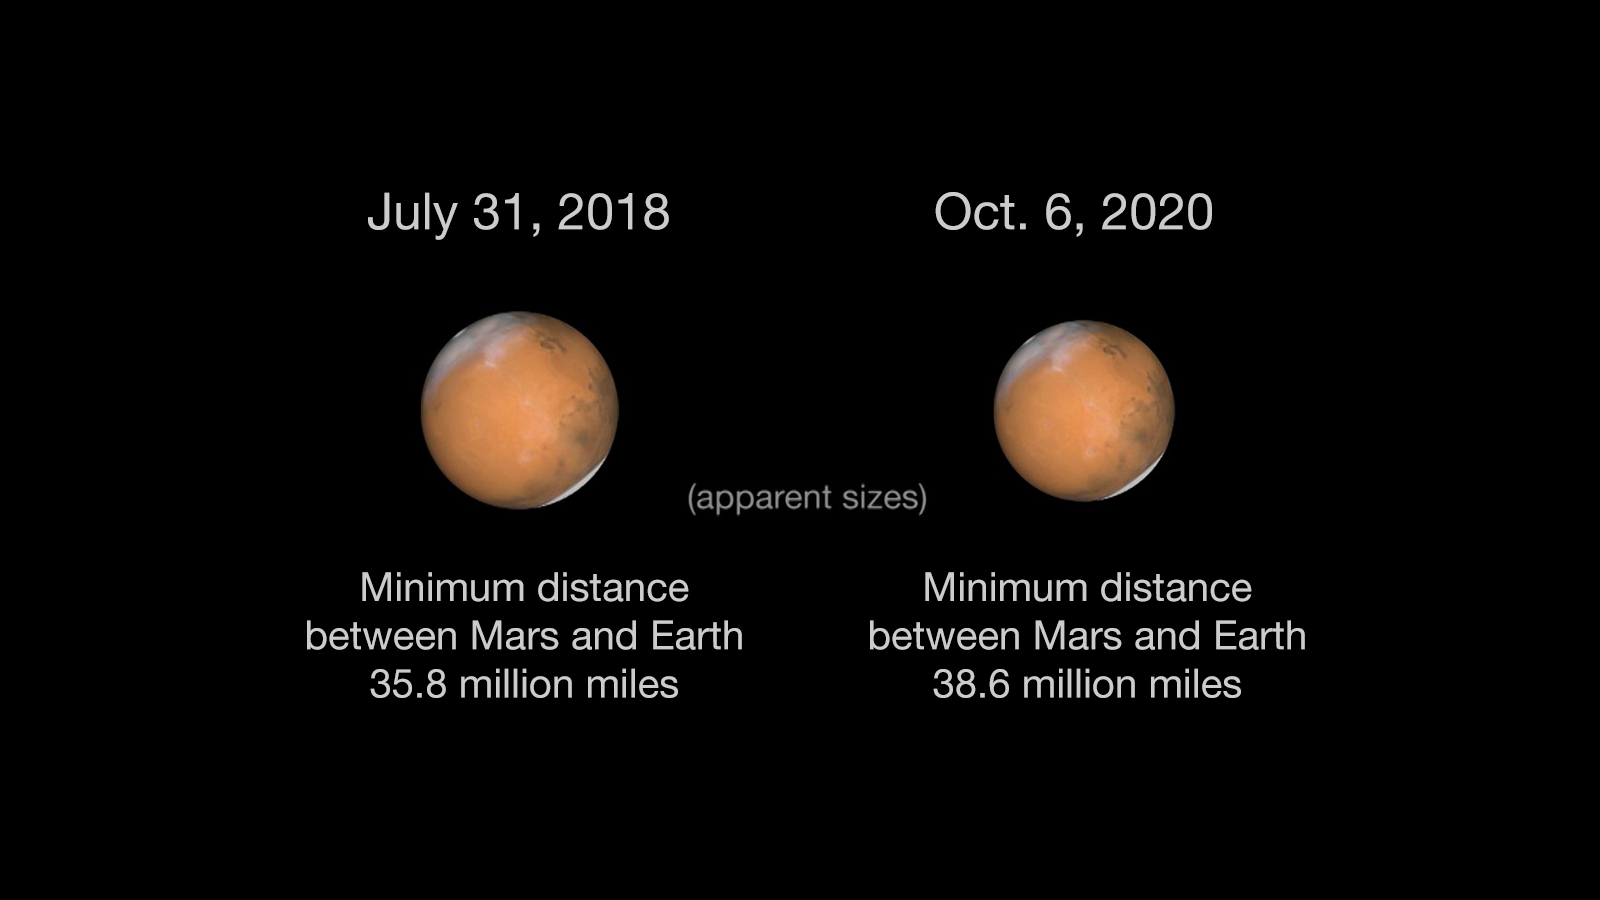 Mars During Close Approach in 2018 and 2020 – NASA's Mars ...